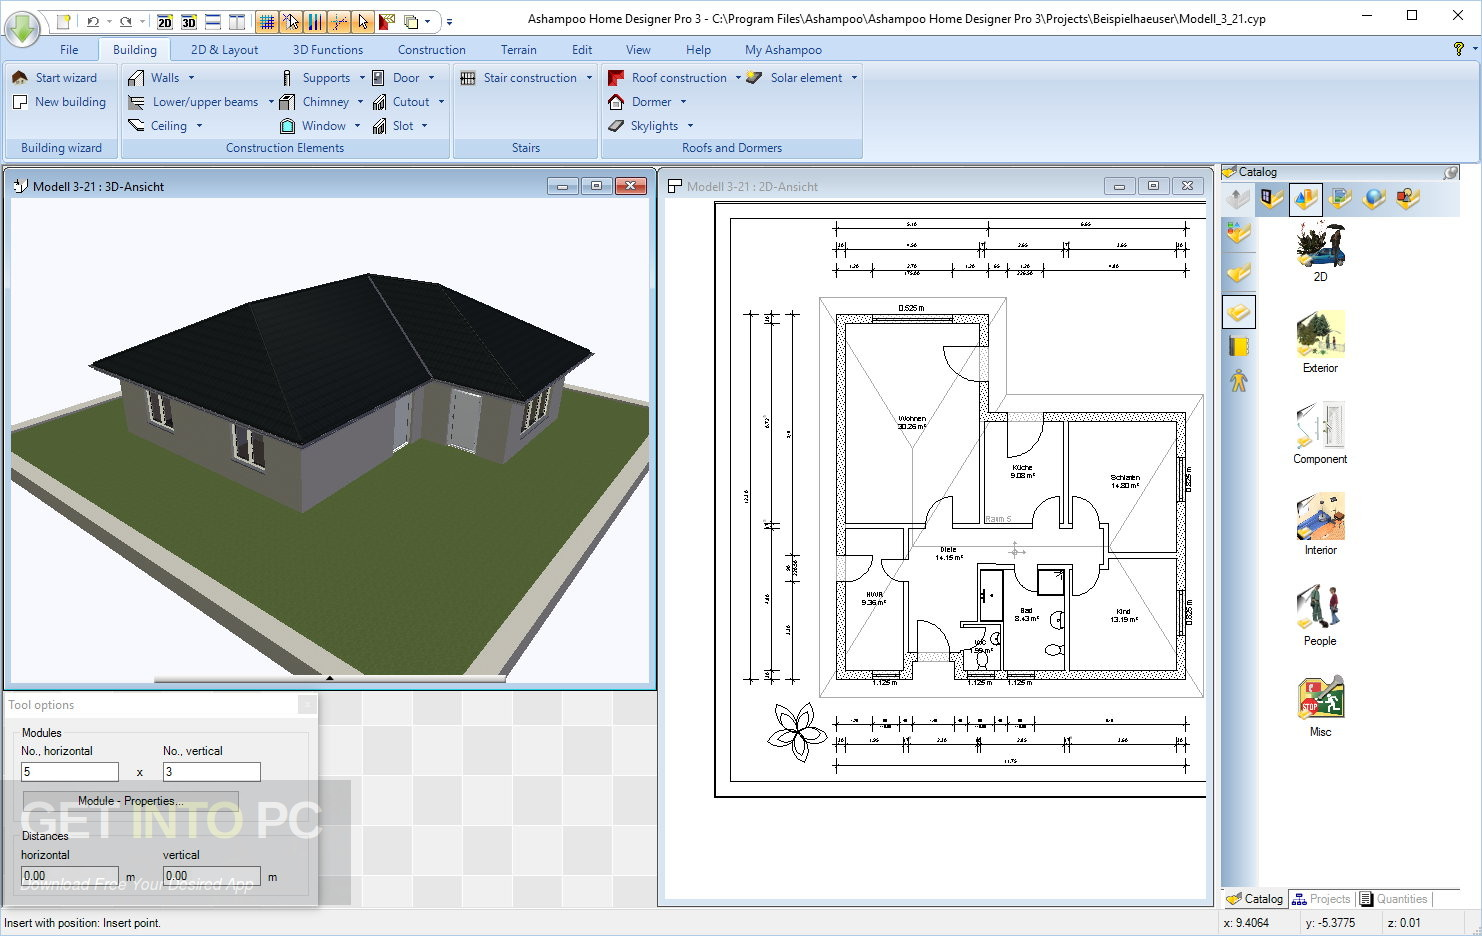 Beau Ashampoo Home Designer Pro 4.1.0 Latest Version Download